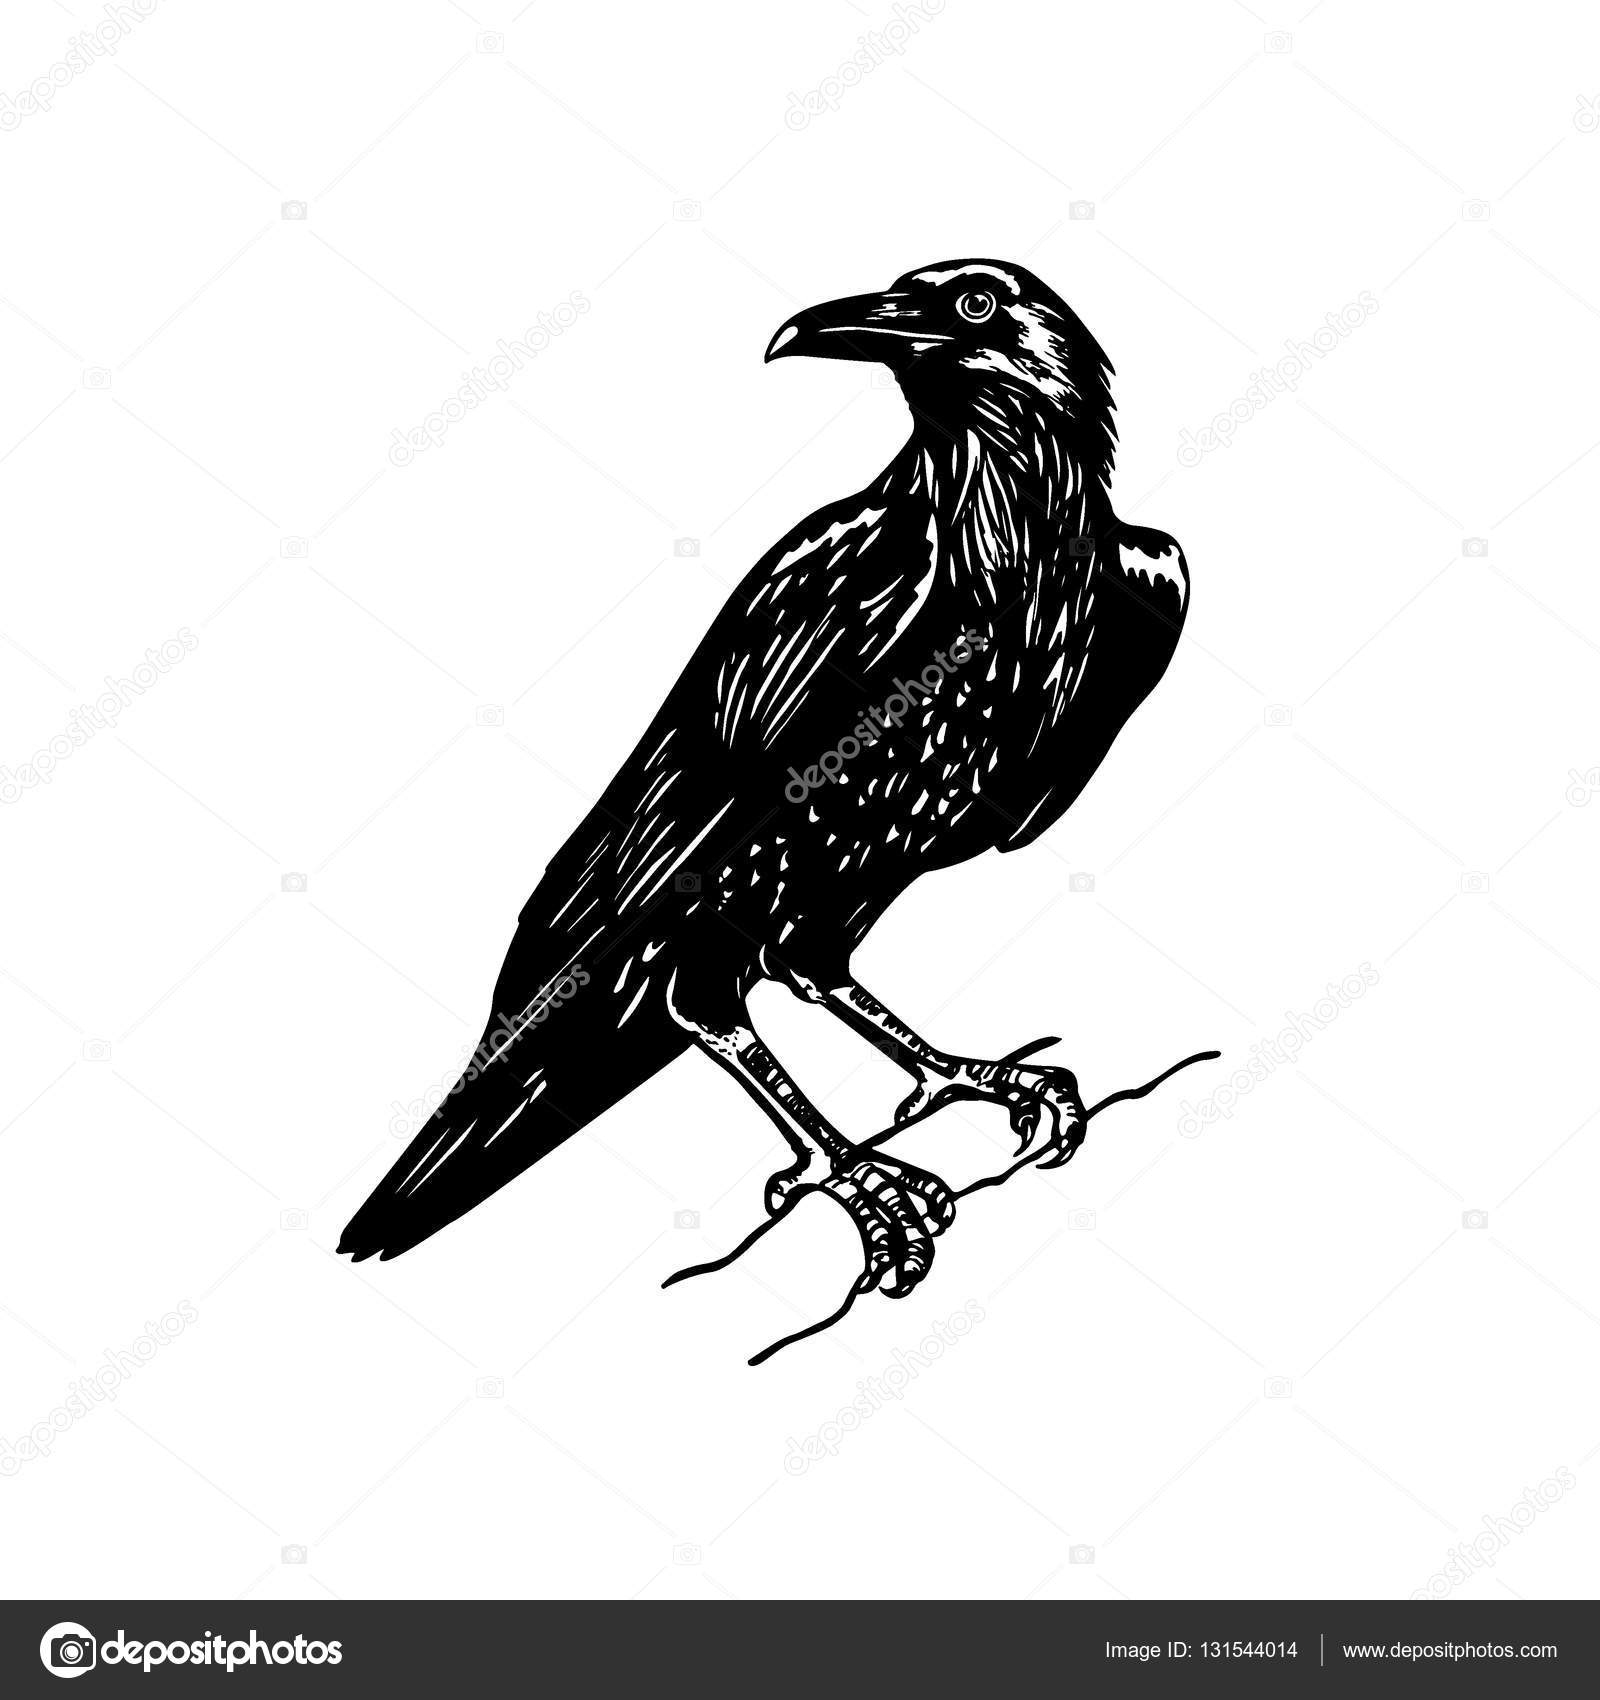 Drawn raven #131544014 raven Hand drawn Stock